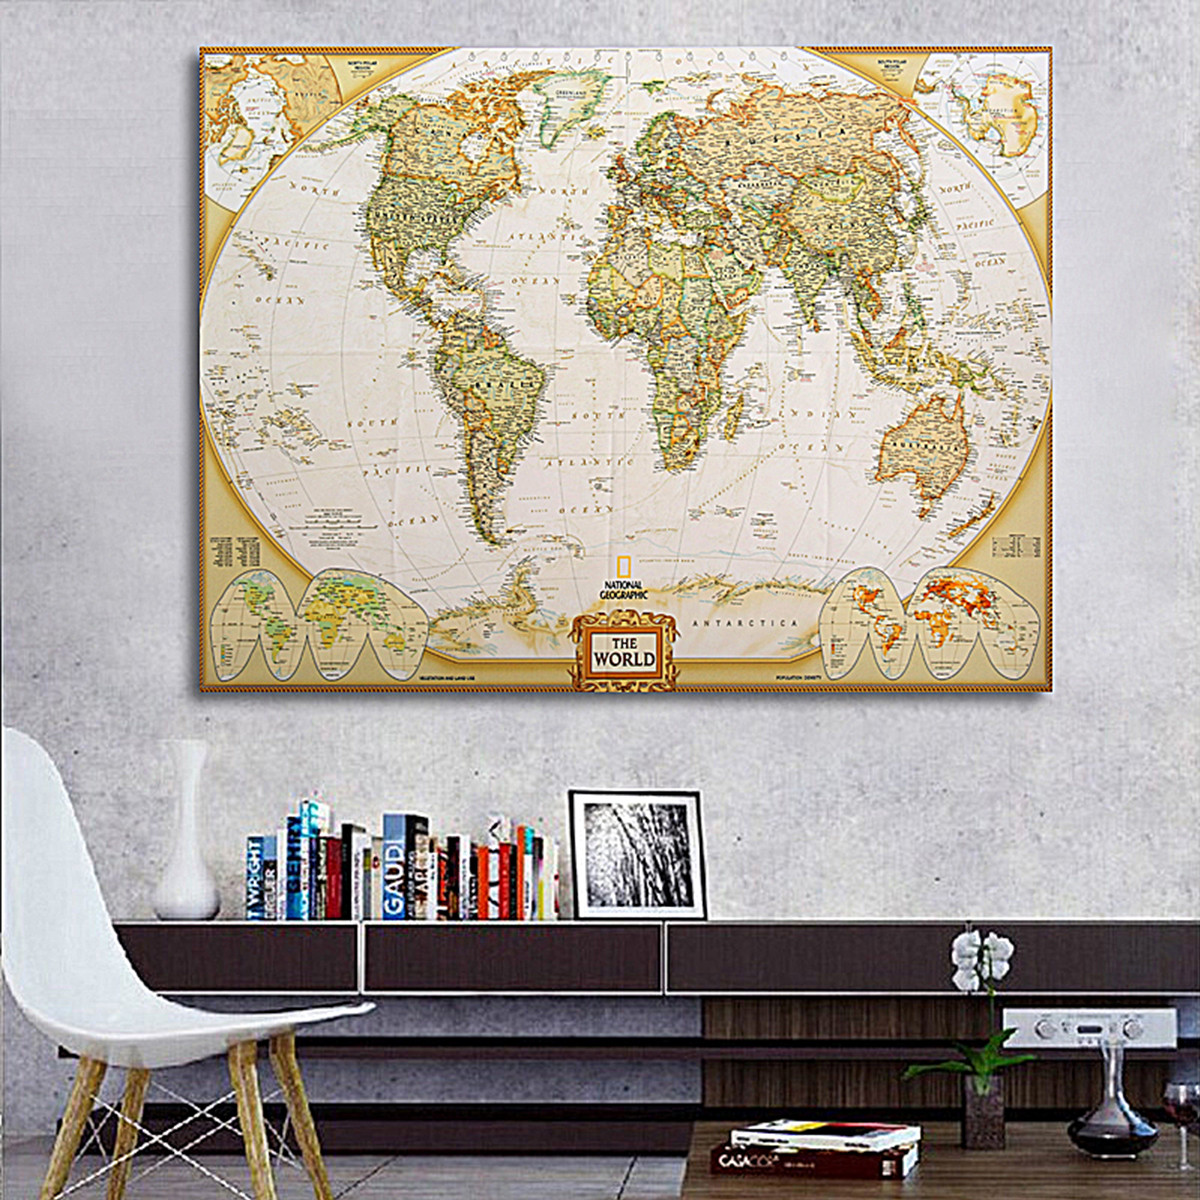 Wall Decoration Cloth : Cm hd retro world map silk cloth poster wall home